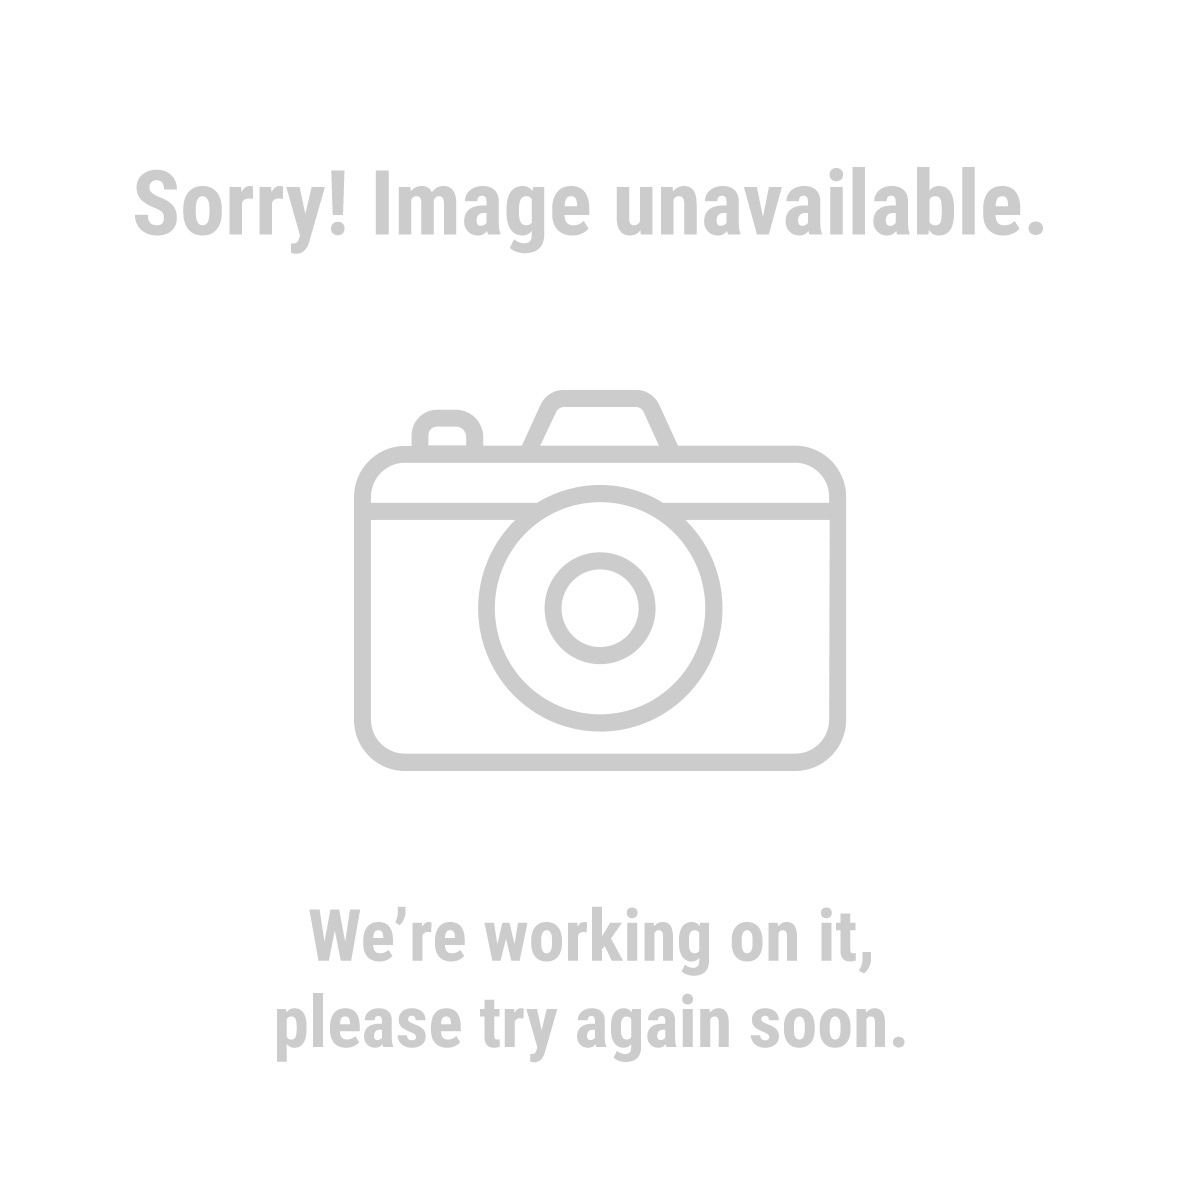 Central Pneumatic 60567 2 Horsepower, 4 Gallon, 125 PSI Twin Tank Air Compressor